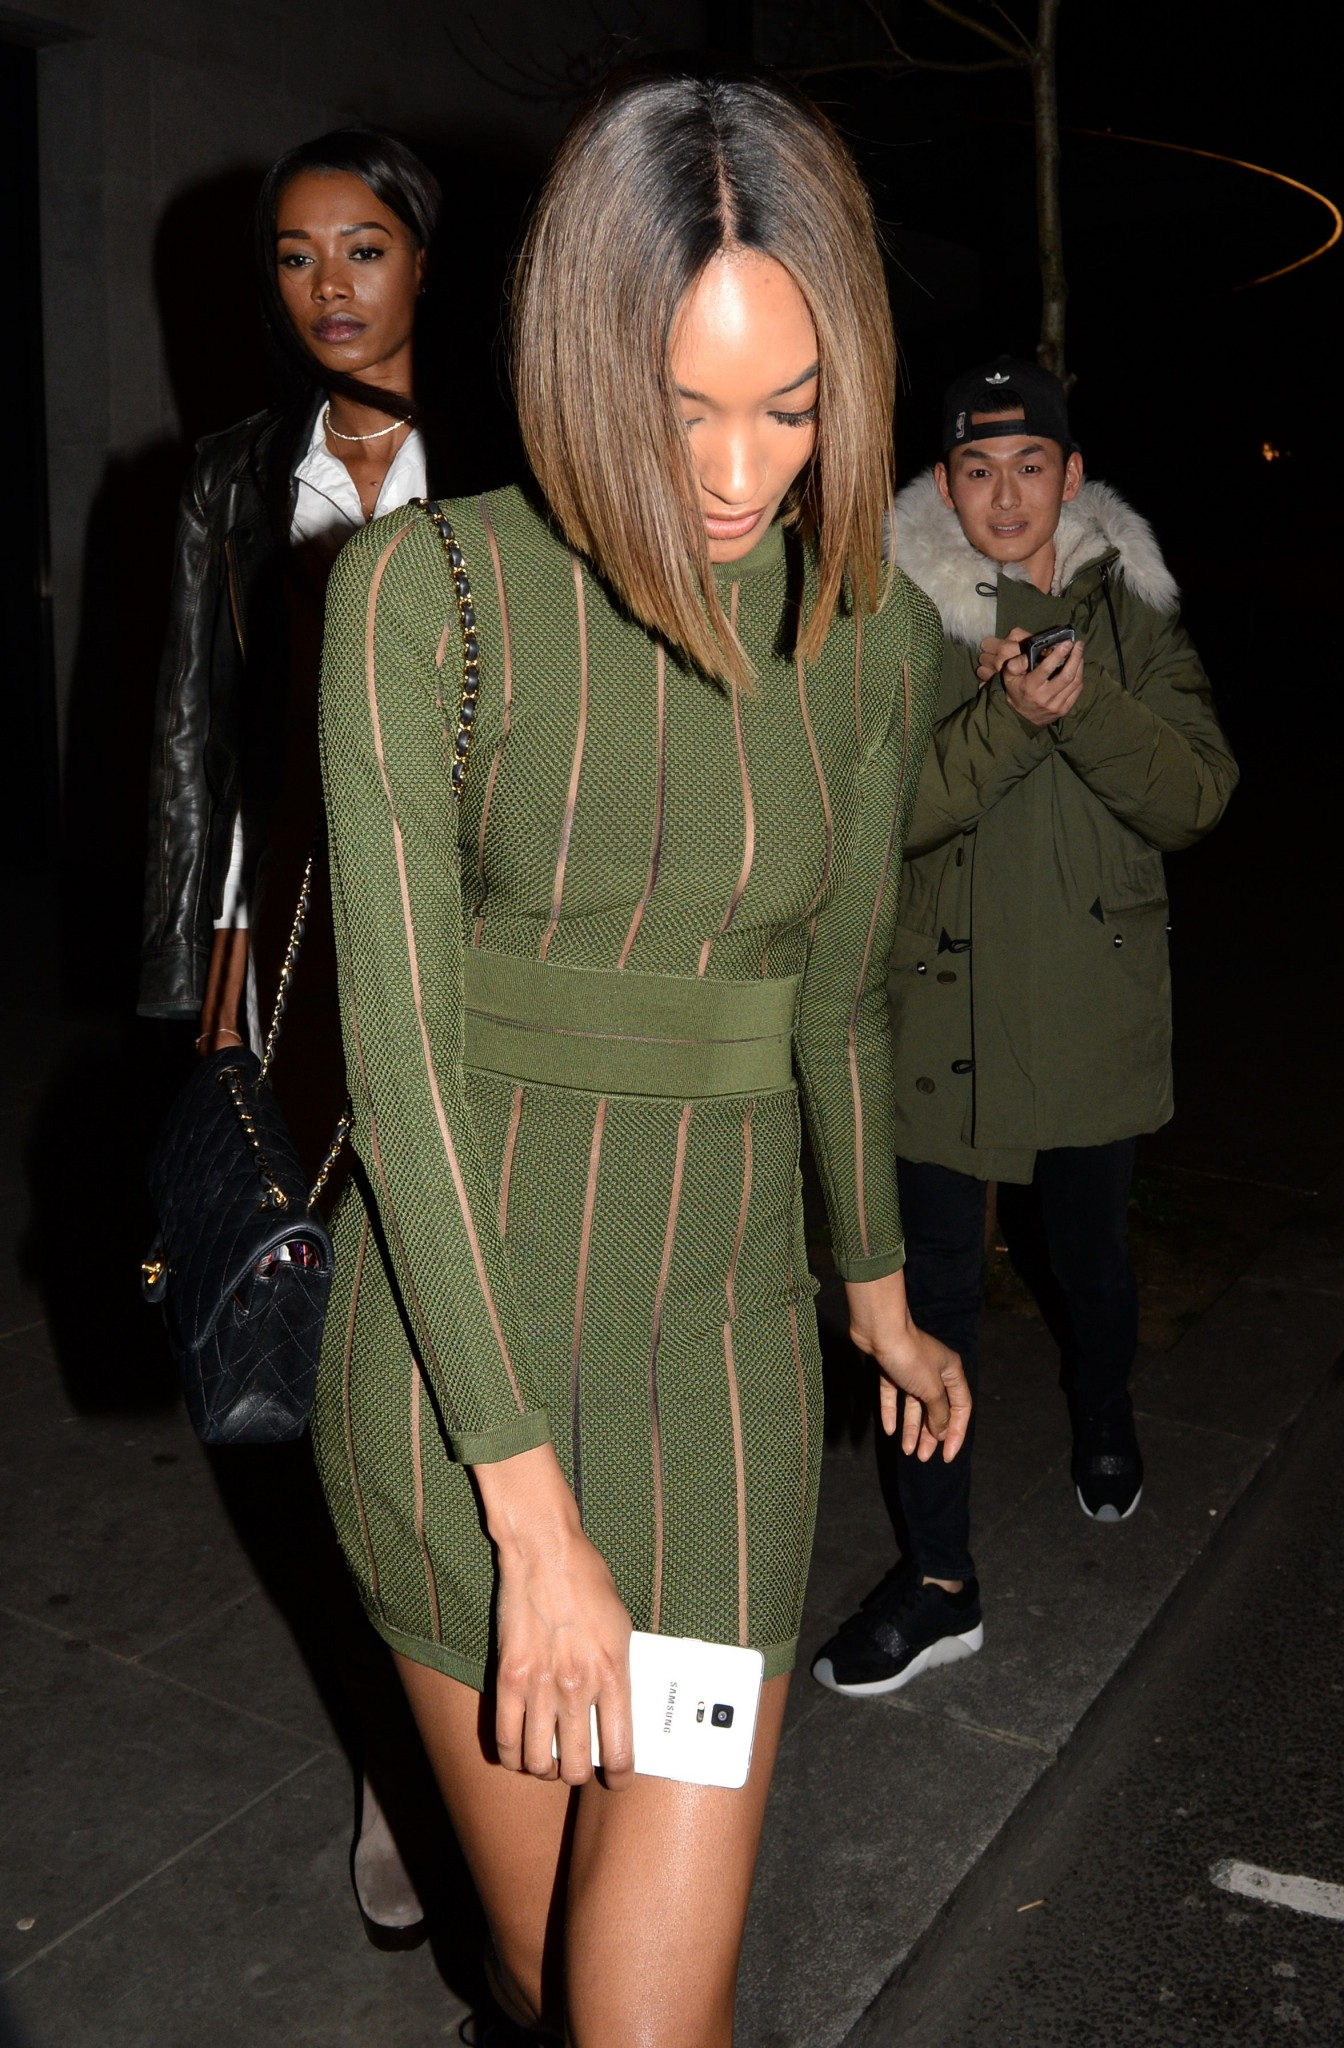 jourdan-dunn-see-through-to-areola-and-nipples-7